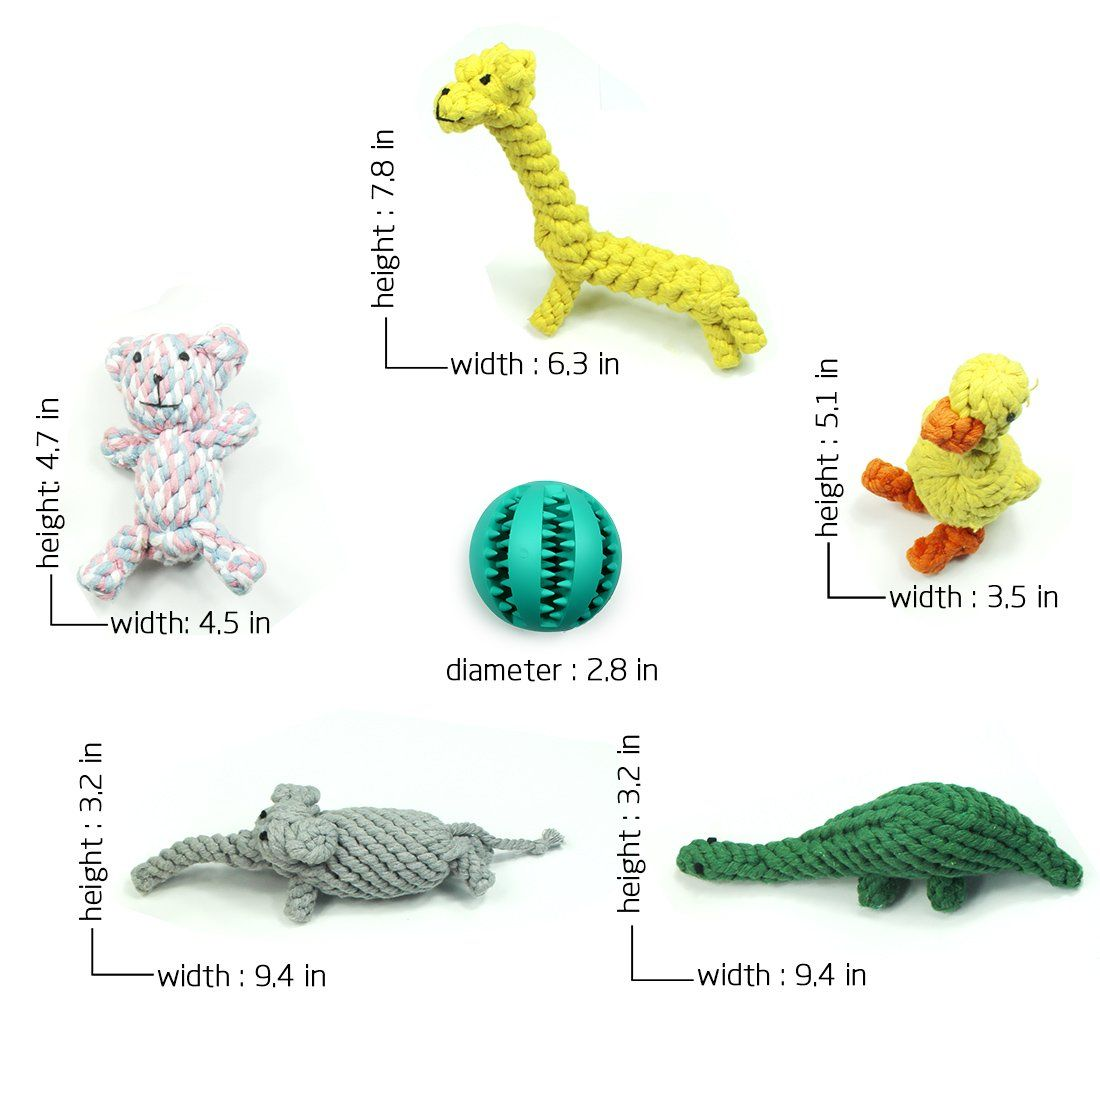 Achivy 6 Piece Animal Design Cotton Rope Dog Toys With